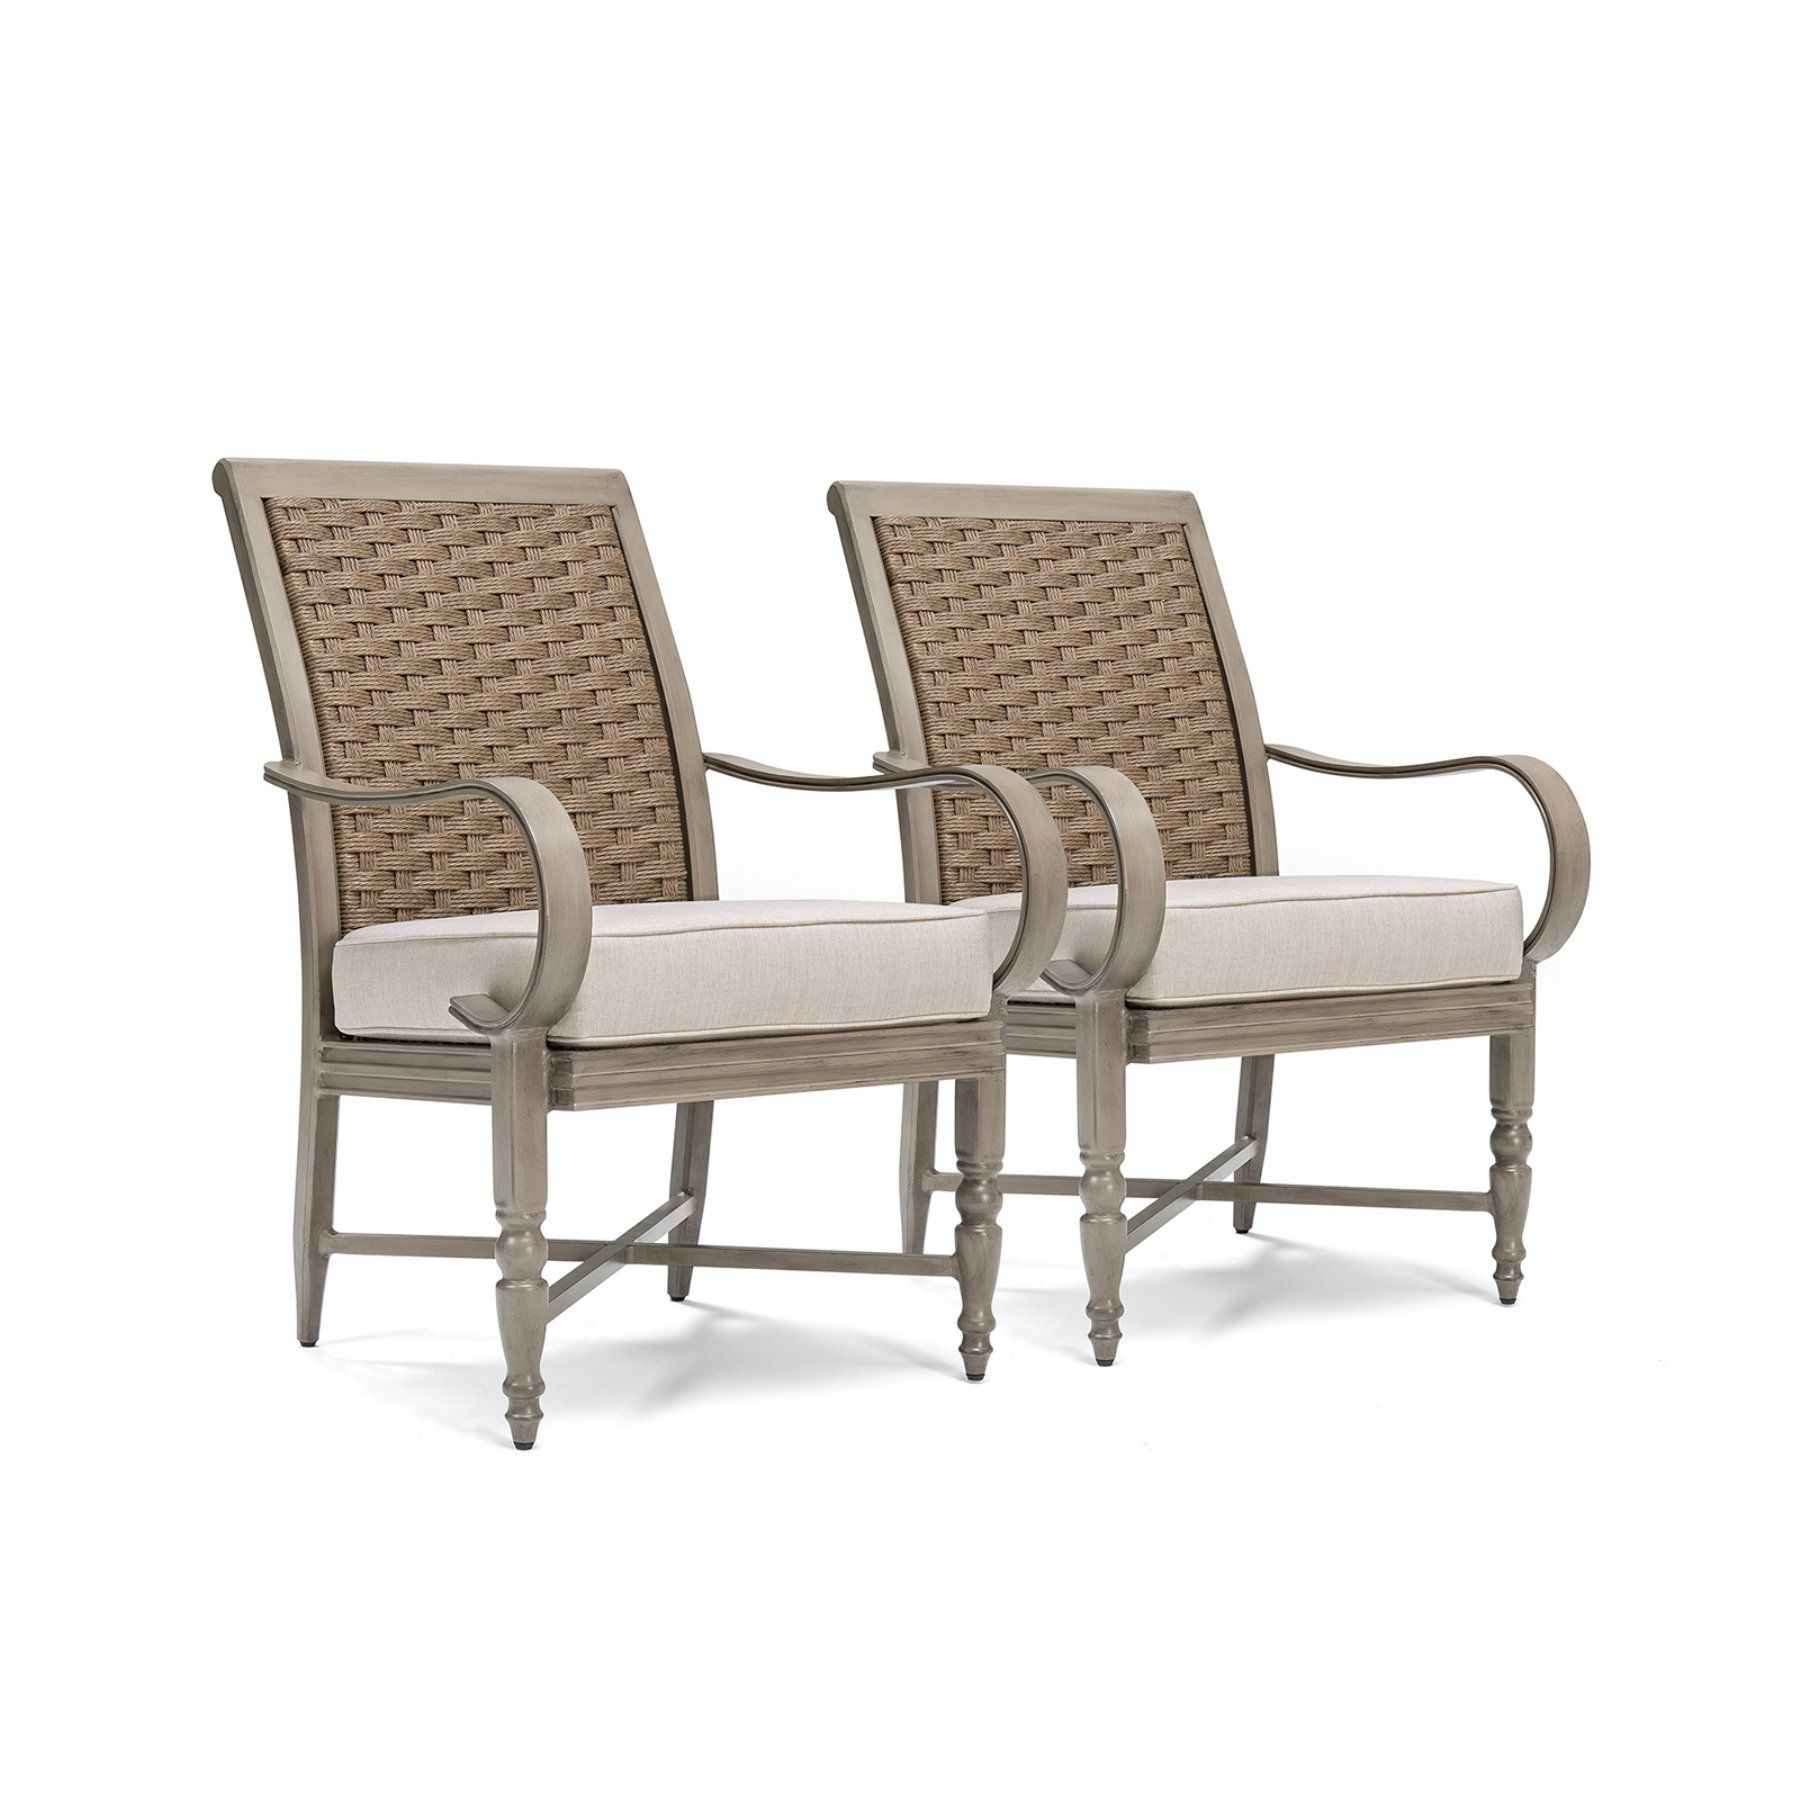 Blue Oak Saylor Wicker Outdoor Dining Arm Chair With Outdura Remy Sand Cushion Set Of 2 Wicker Dining Chairs Dining Arm Chair Oak Dining Chairs